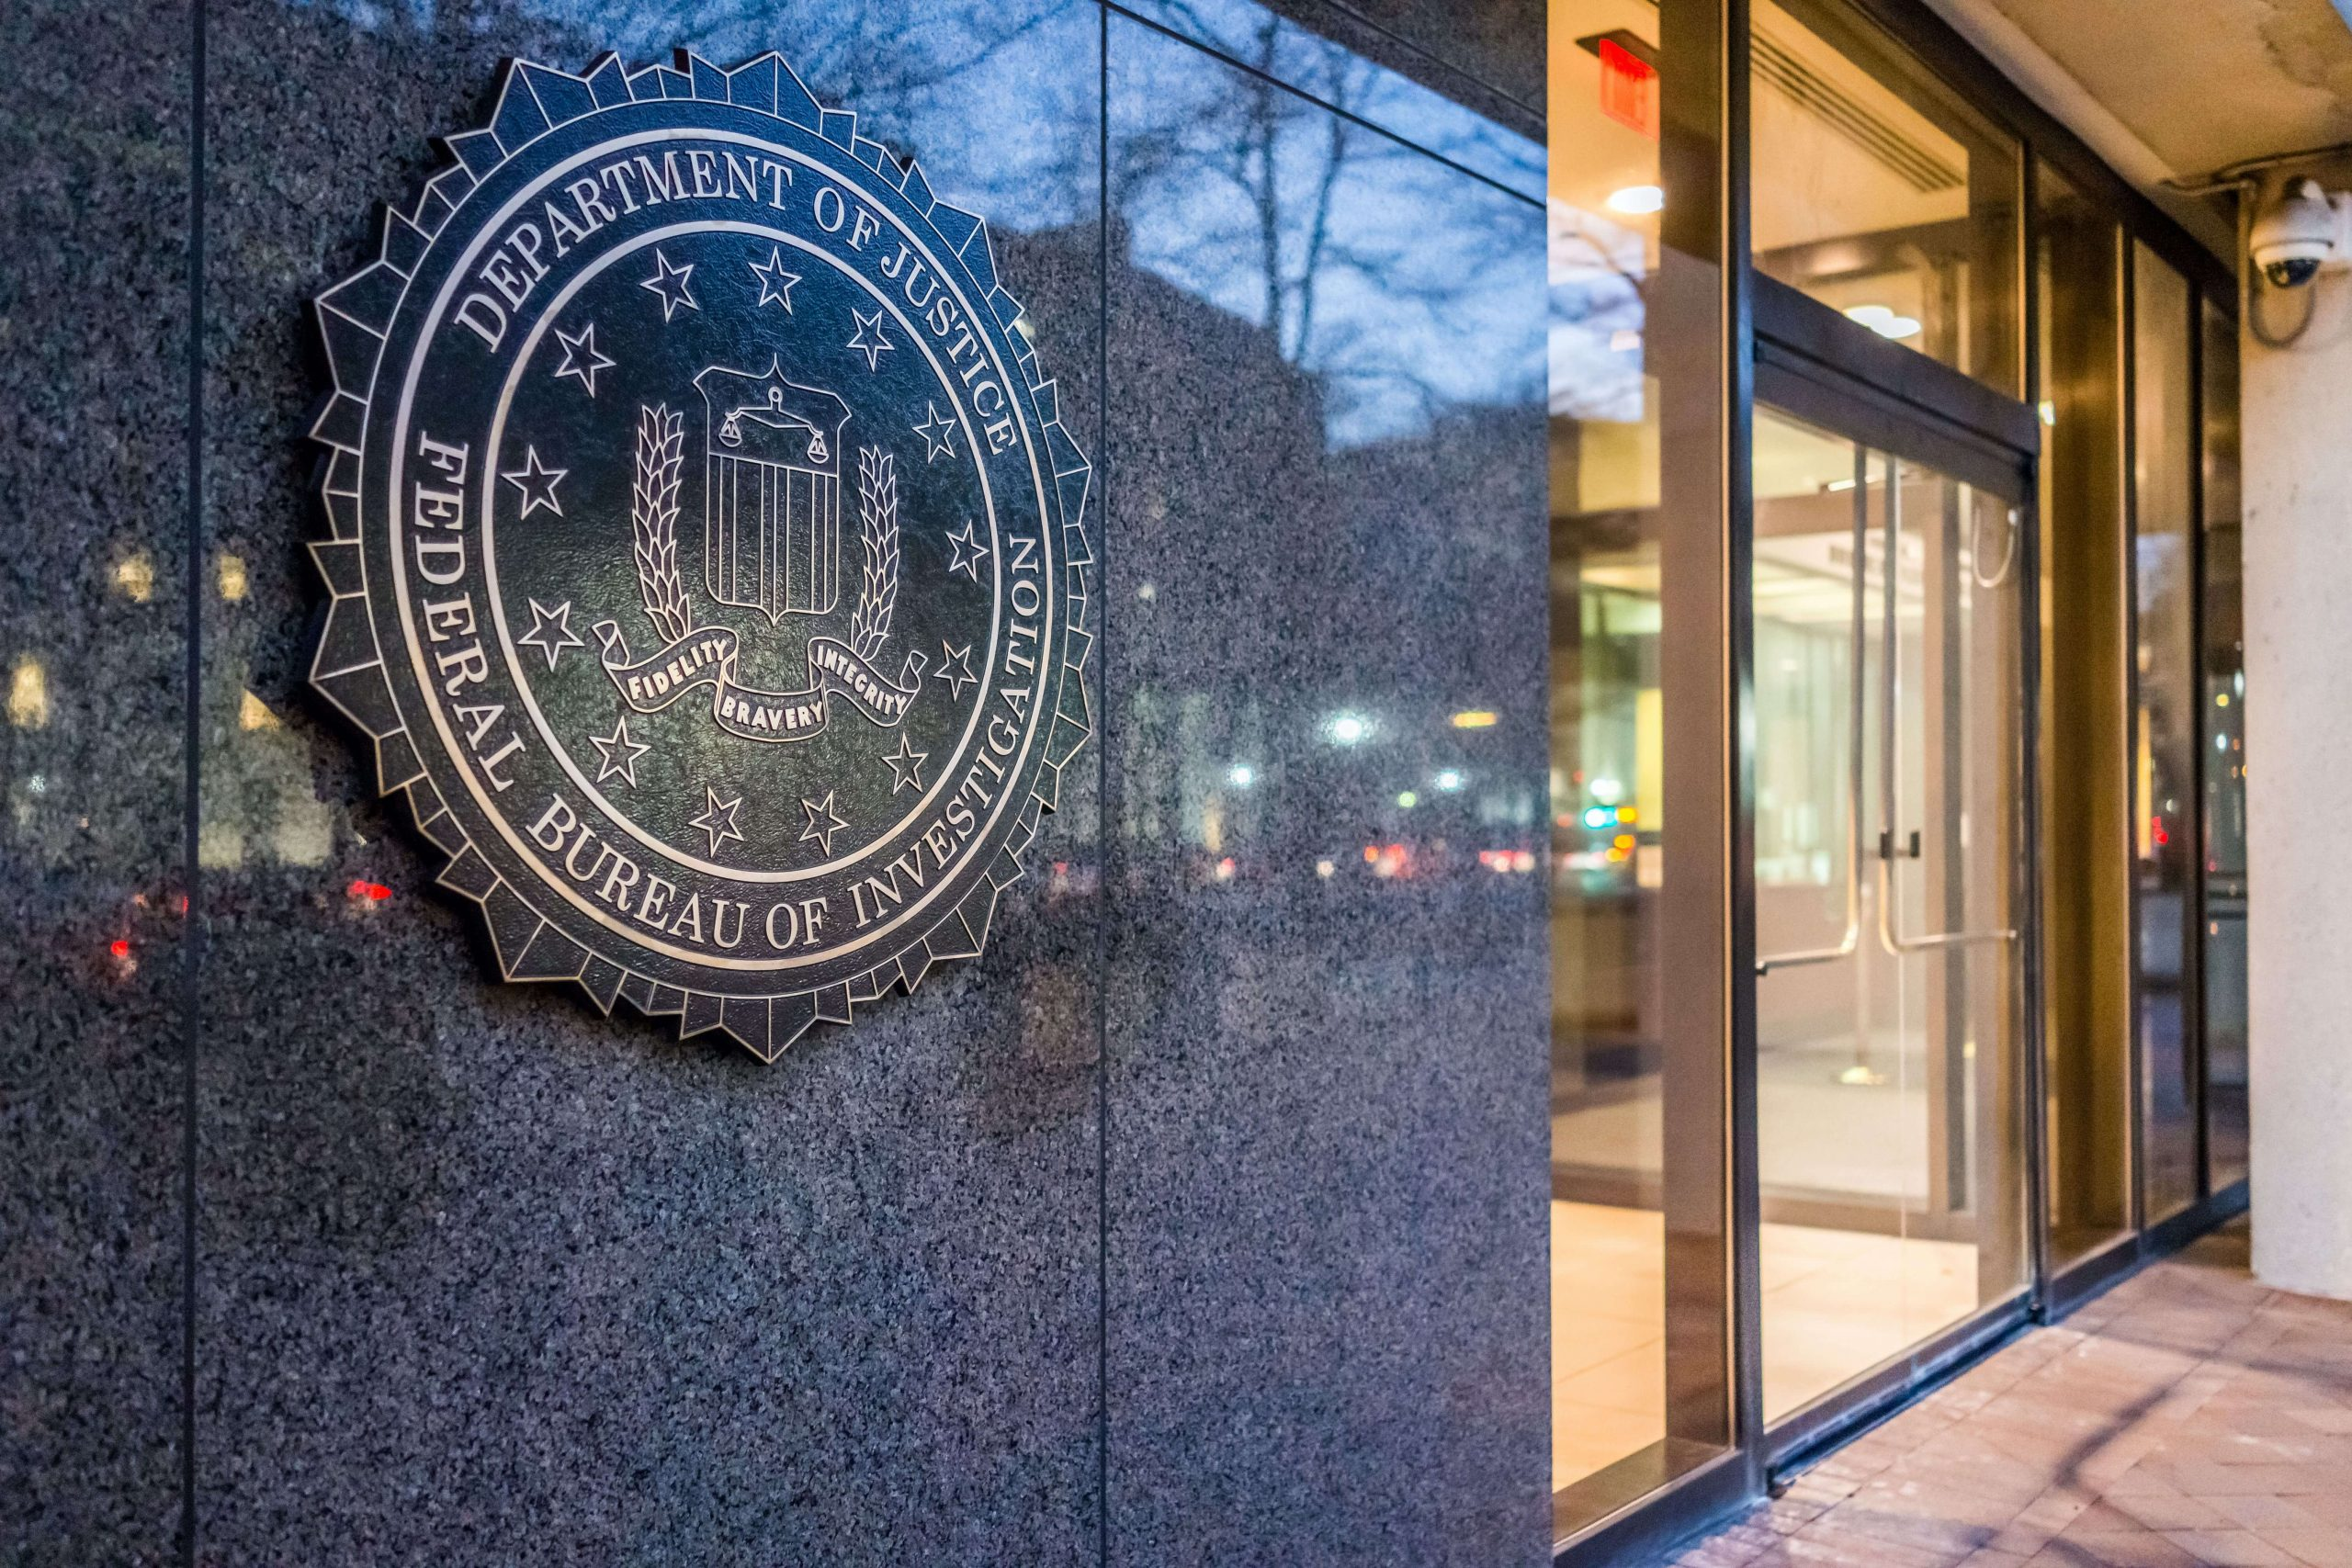 FBI: JBS ransomware attack was carried out by REvil